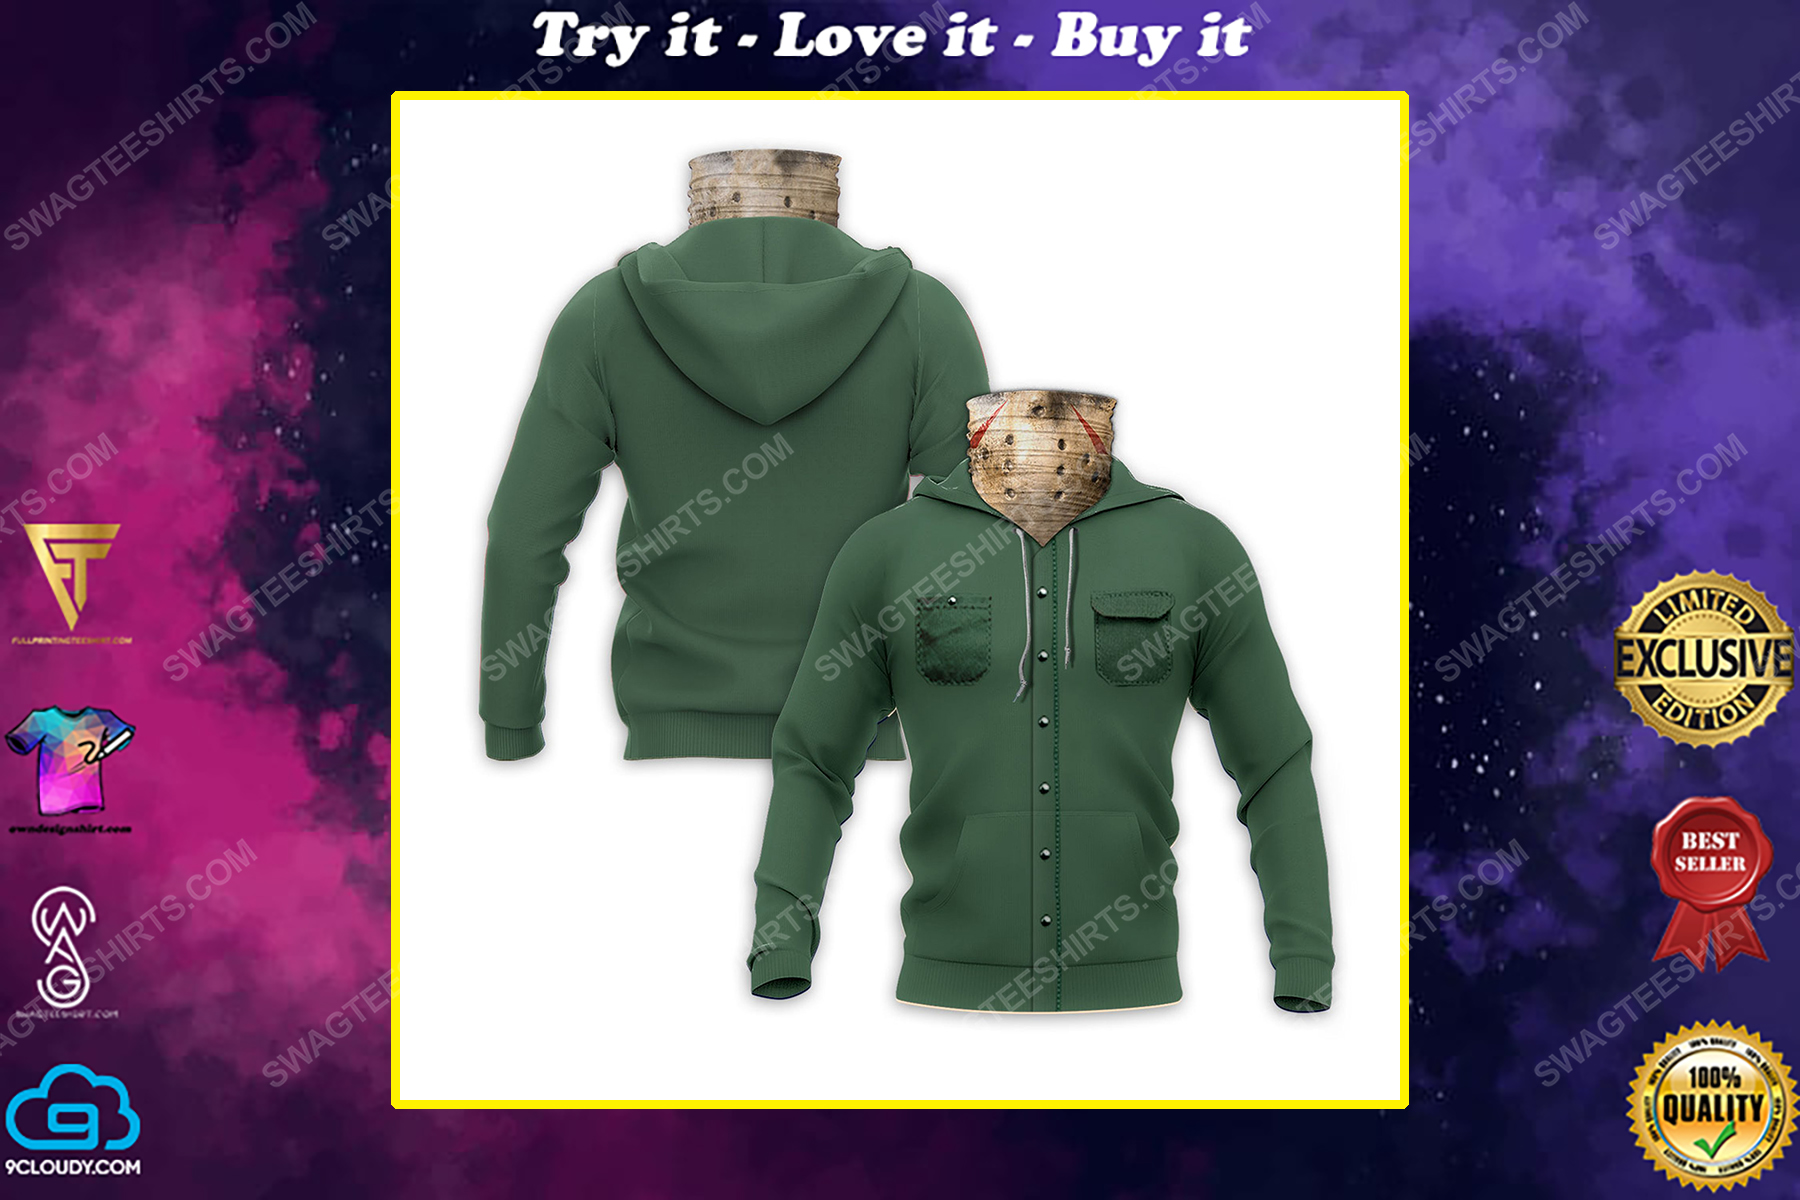 Jason voorhees friday the 13th for halloween full print mask hoodie